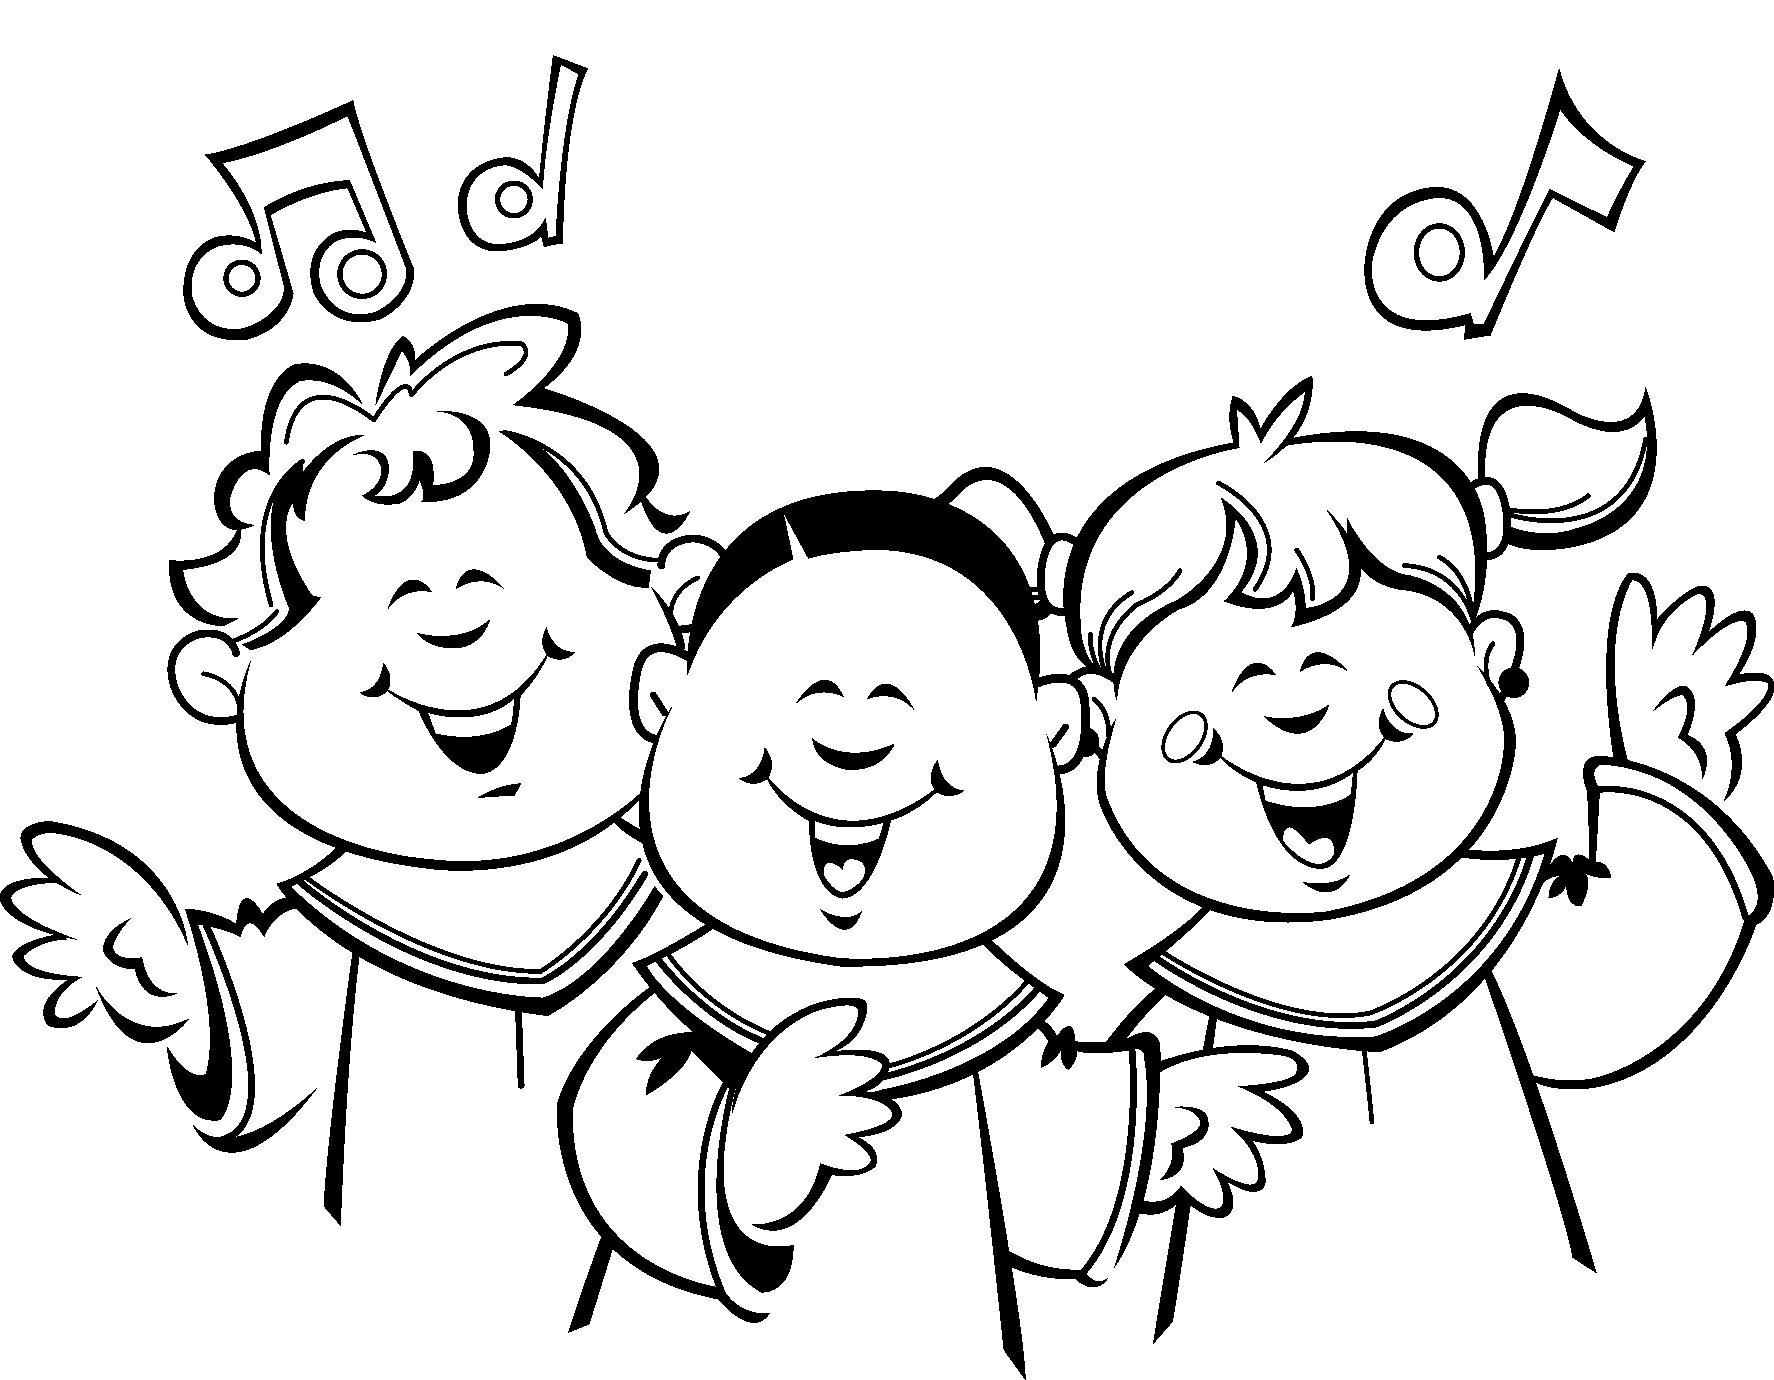 choral singing coloring pages - photo#3